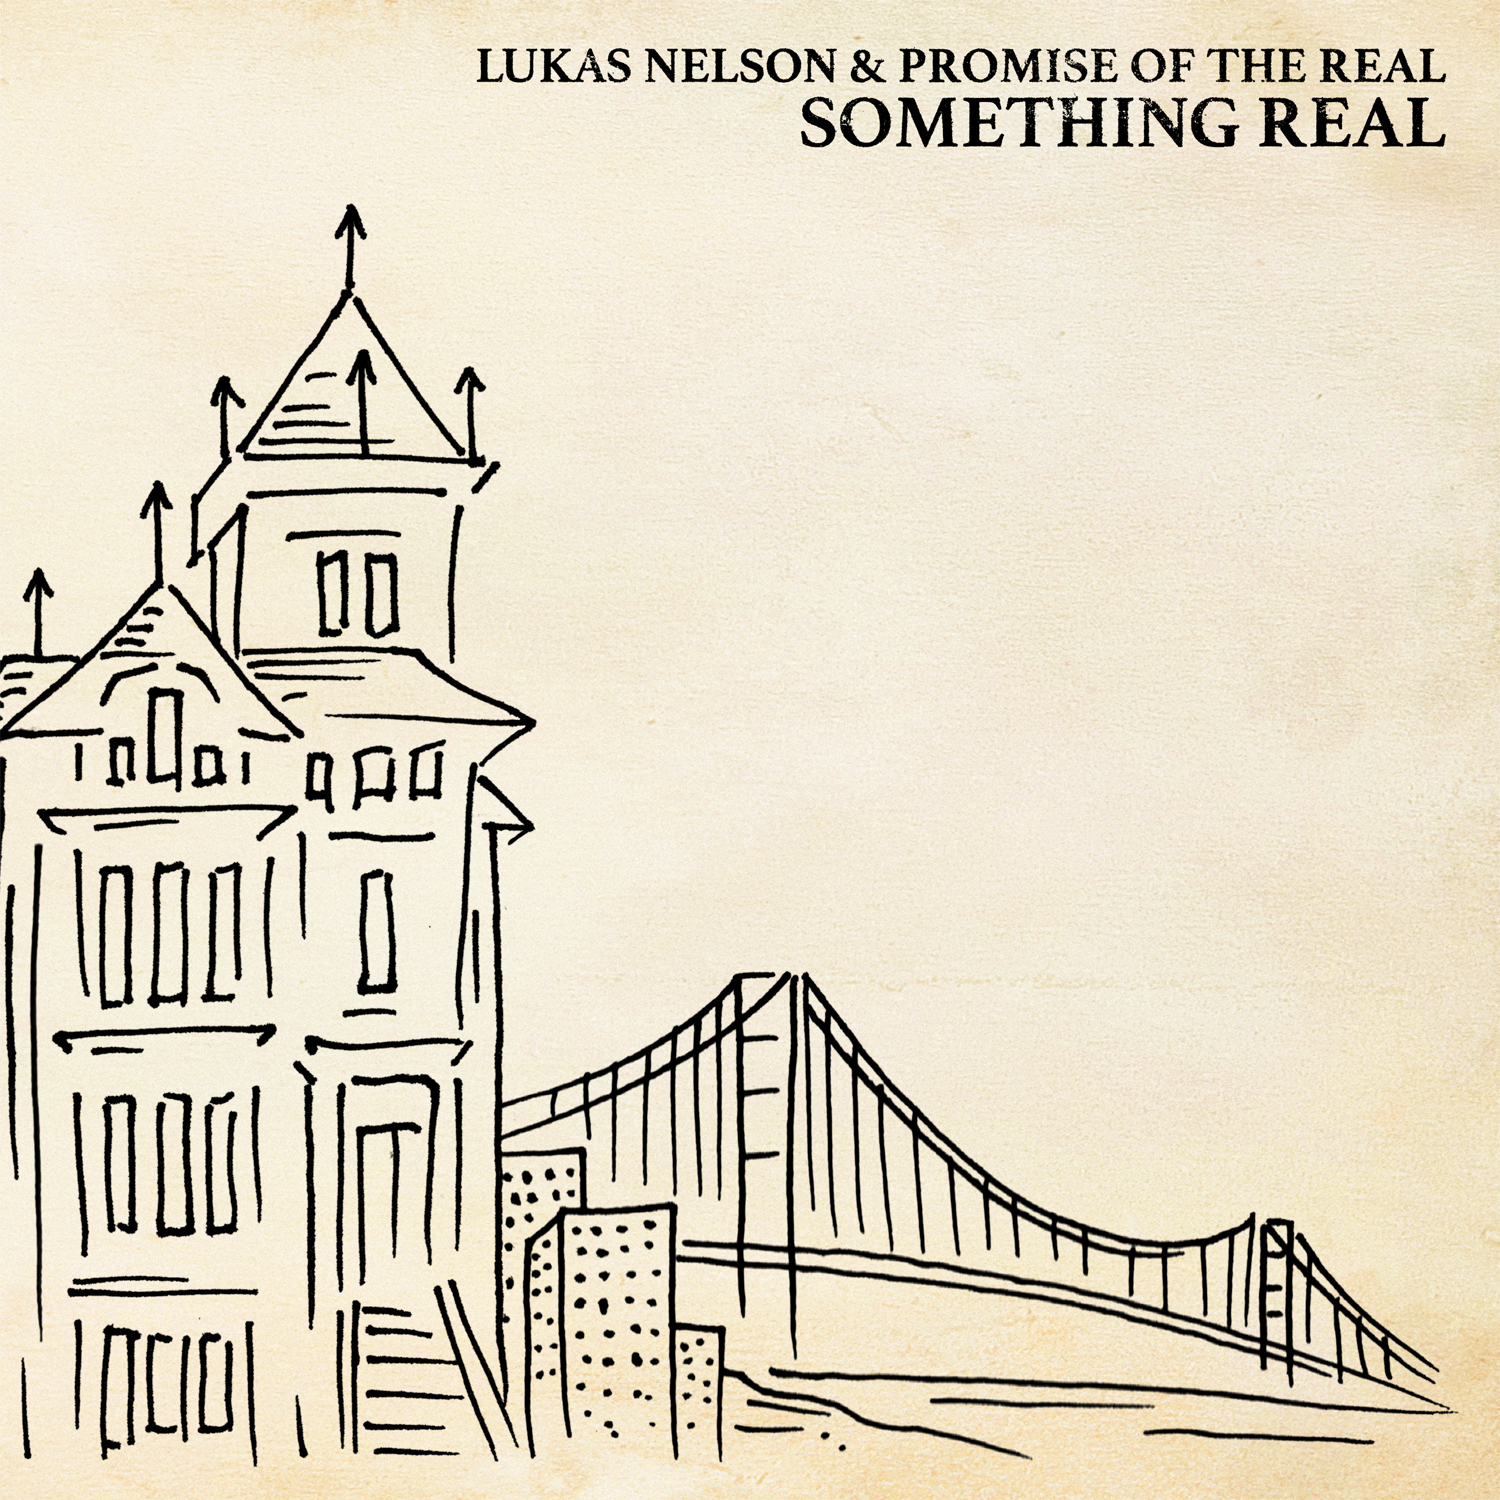 05_Lukas Nelson & Promise of the Real